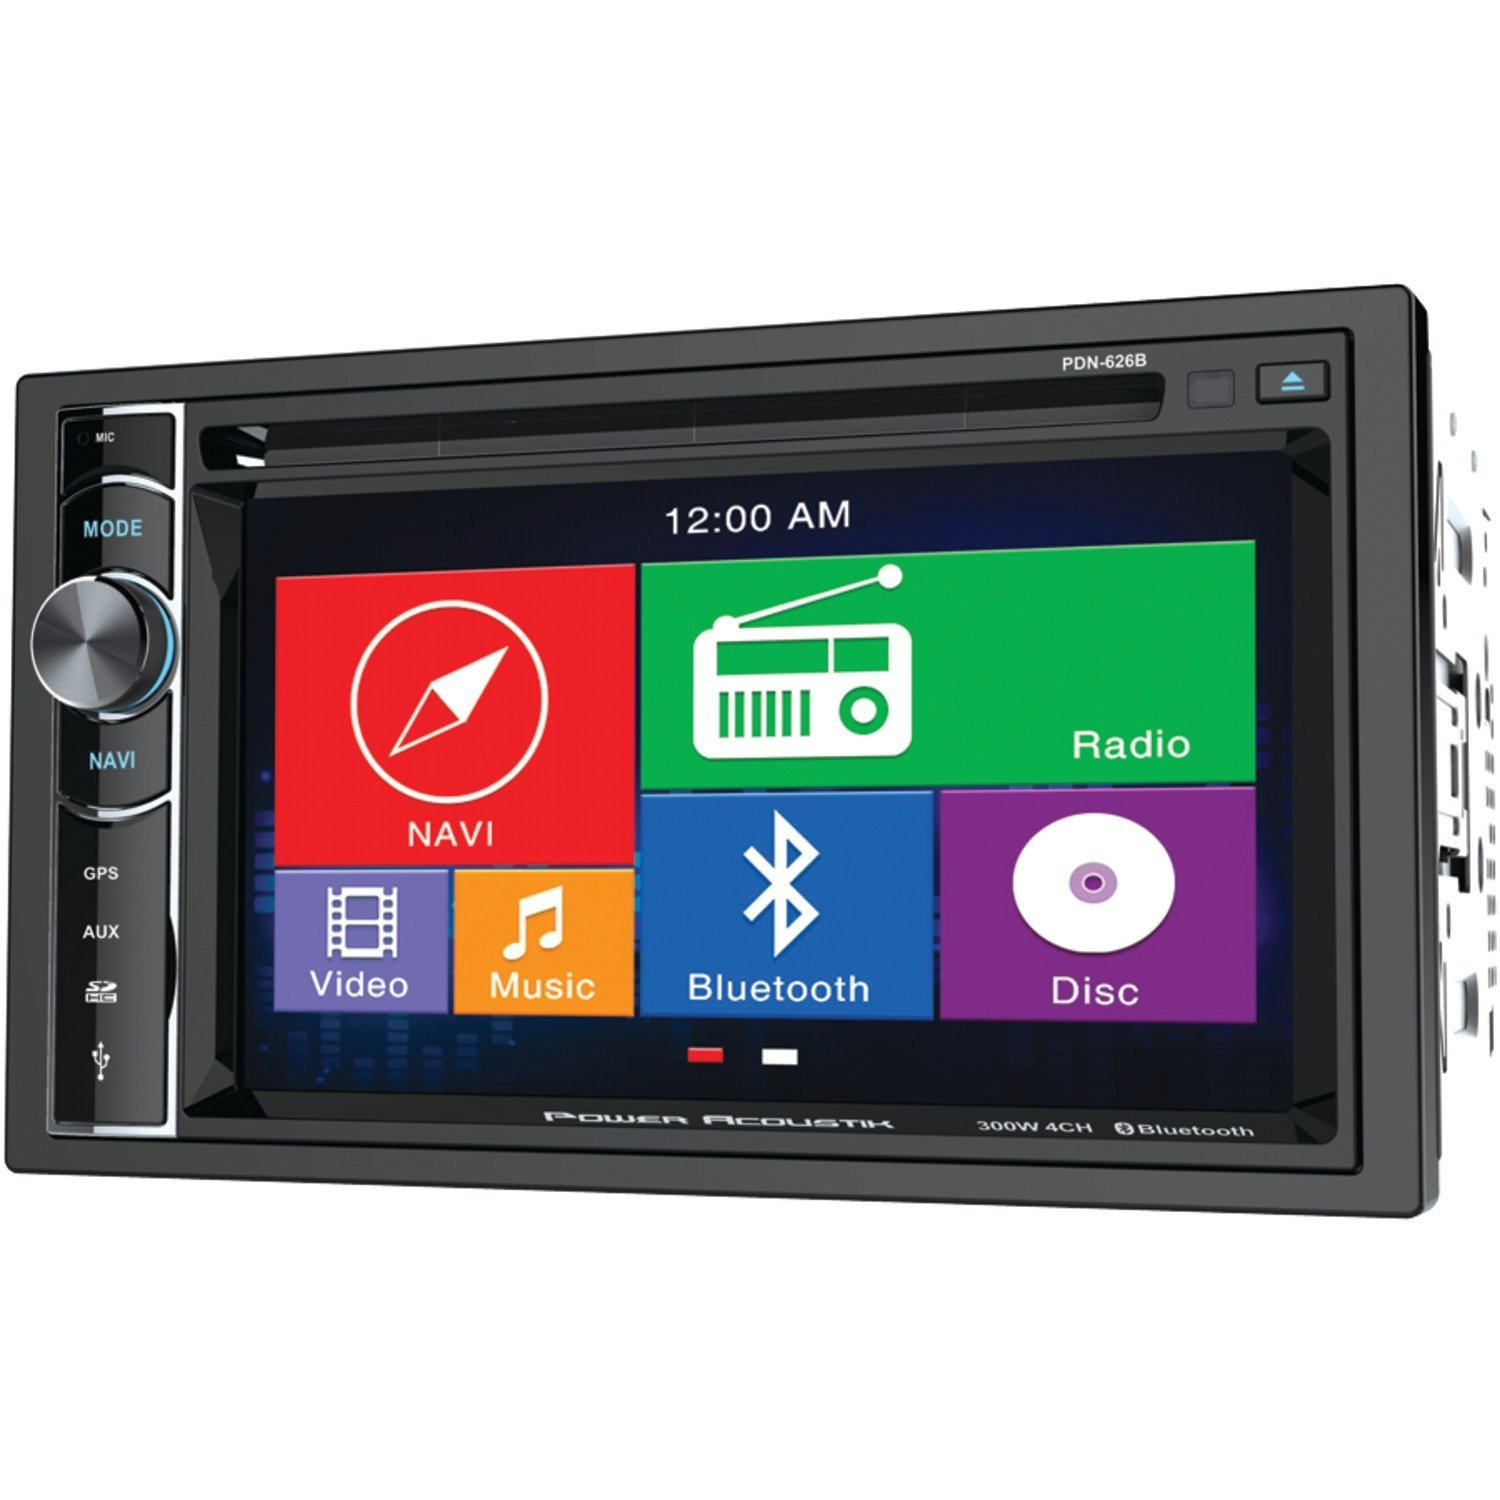 Car Mount Dvd, Double Din Bluetooth Indash Car Stereo Dvd Player, With Navigation